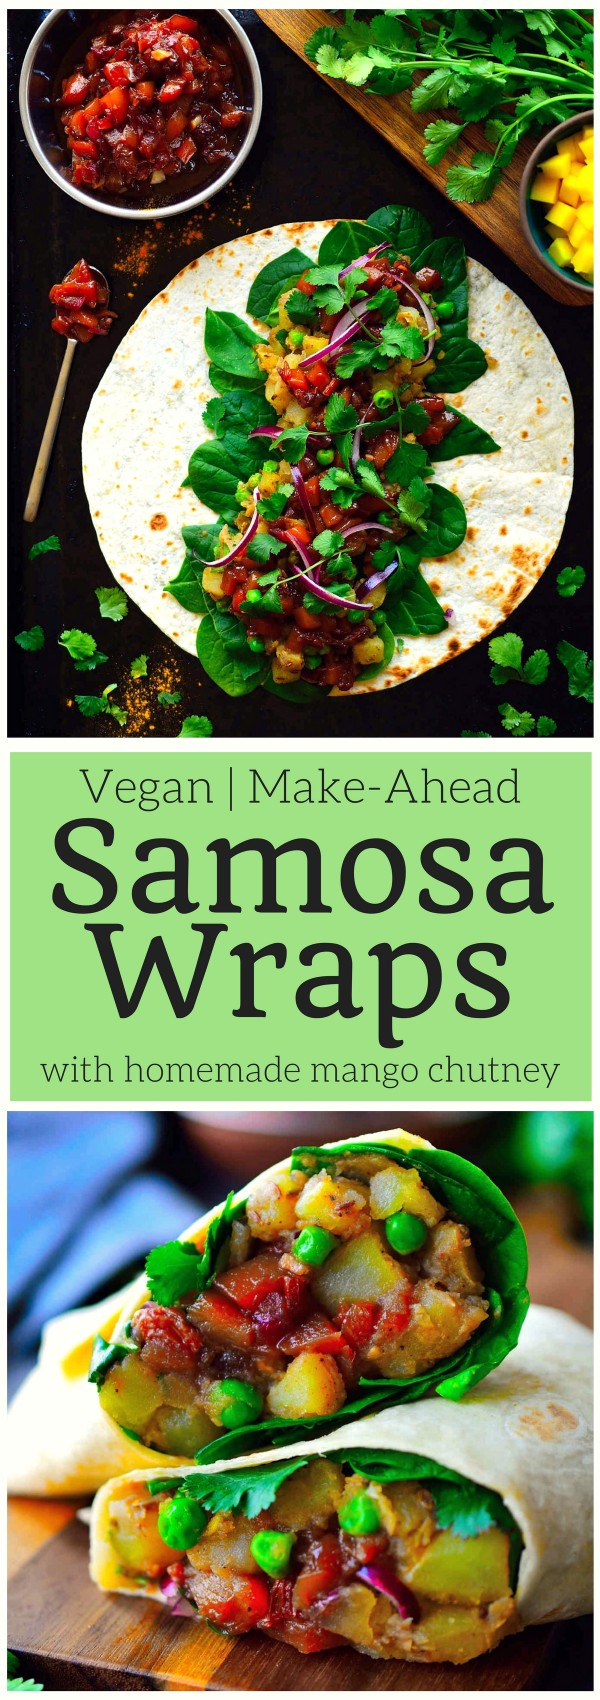 Get the recipe Samosa Wraps @recipes_to_go